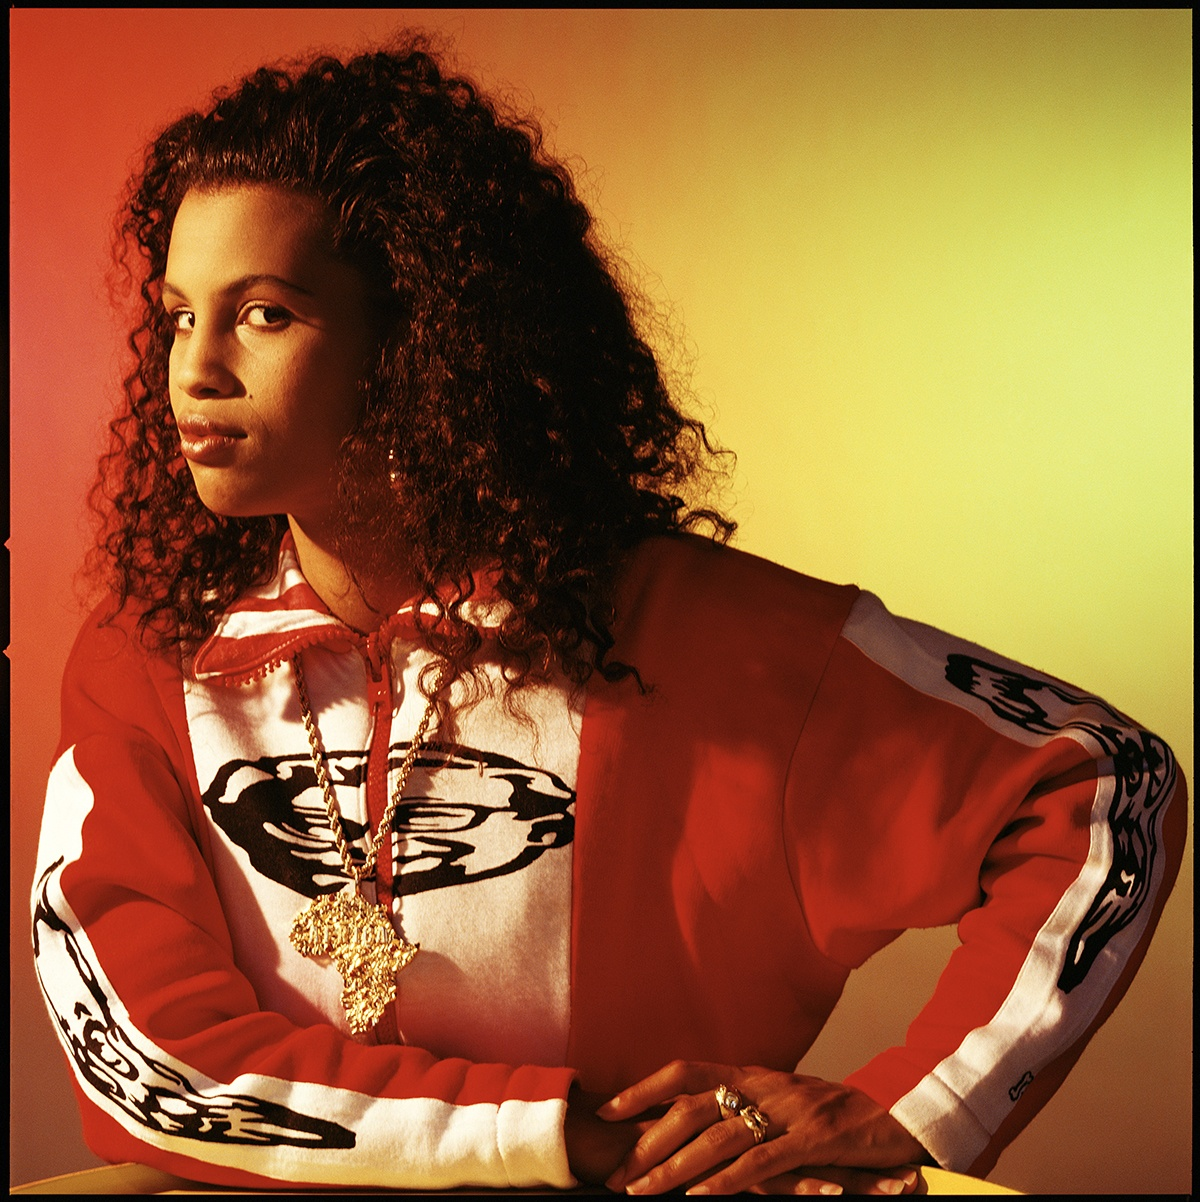 Portrait of Neneh Cherry with a gold Africa chain, London, 1980s by Laurence Watson